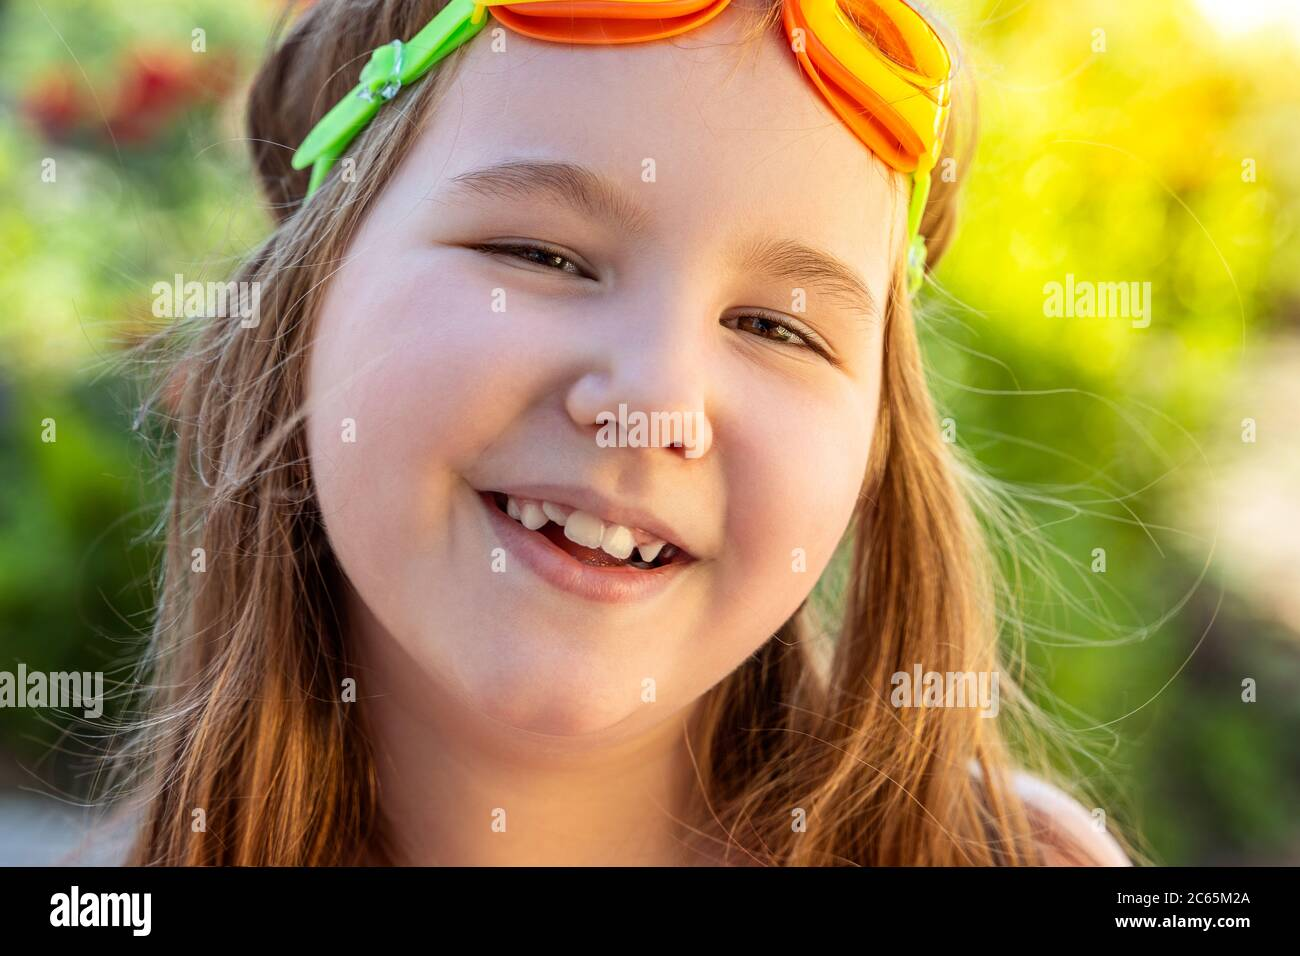 Portrait of a beautiful smilling little girl with goggles for swimming pool. Activities with children outdoors. Summer having fun. Copy space. Stock Photo